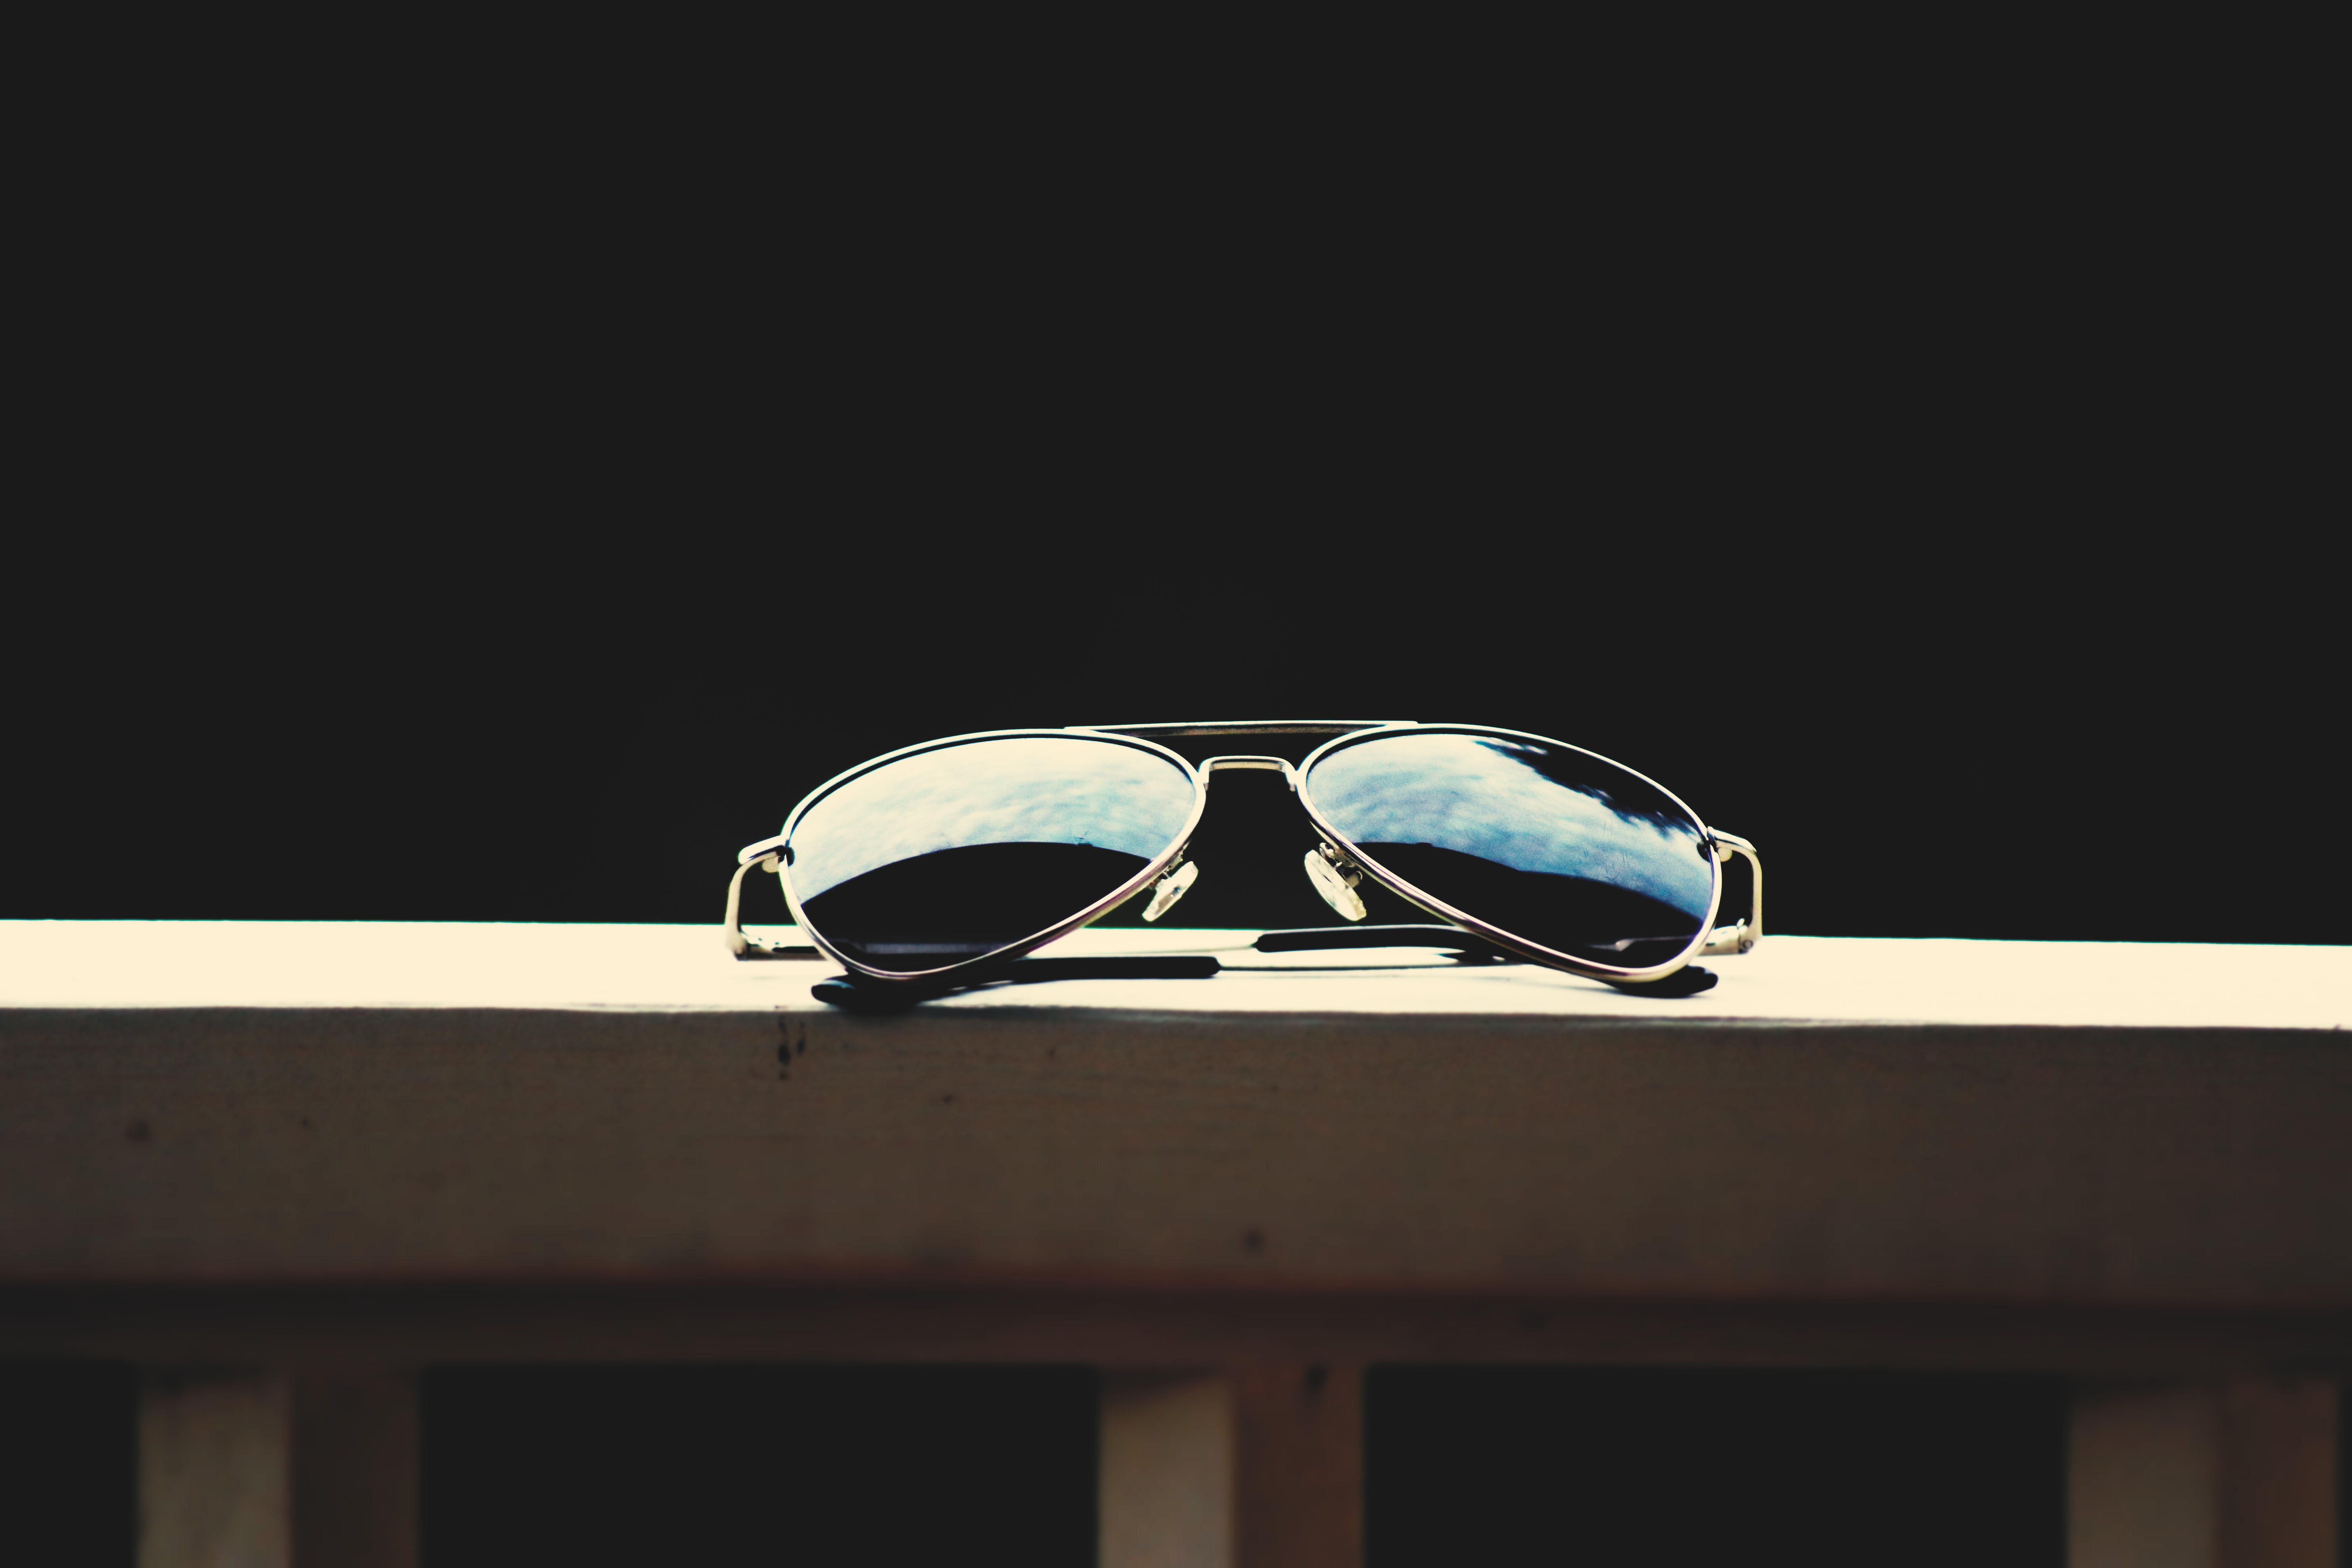 Black Lens Aviator-style Sunglasses With Gray Frames on Brown Wooden Railings